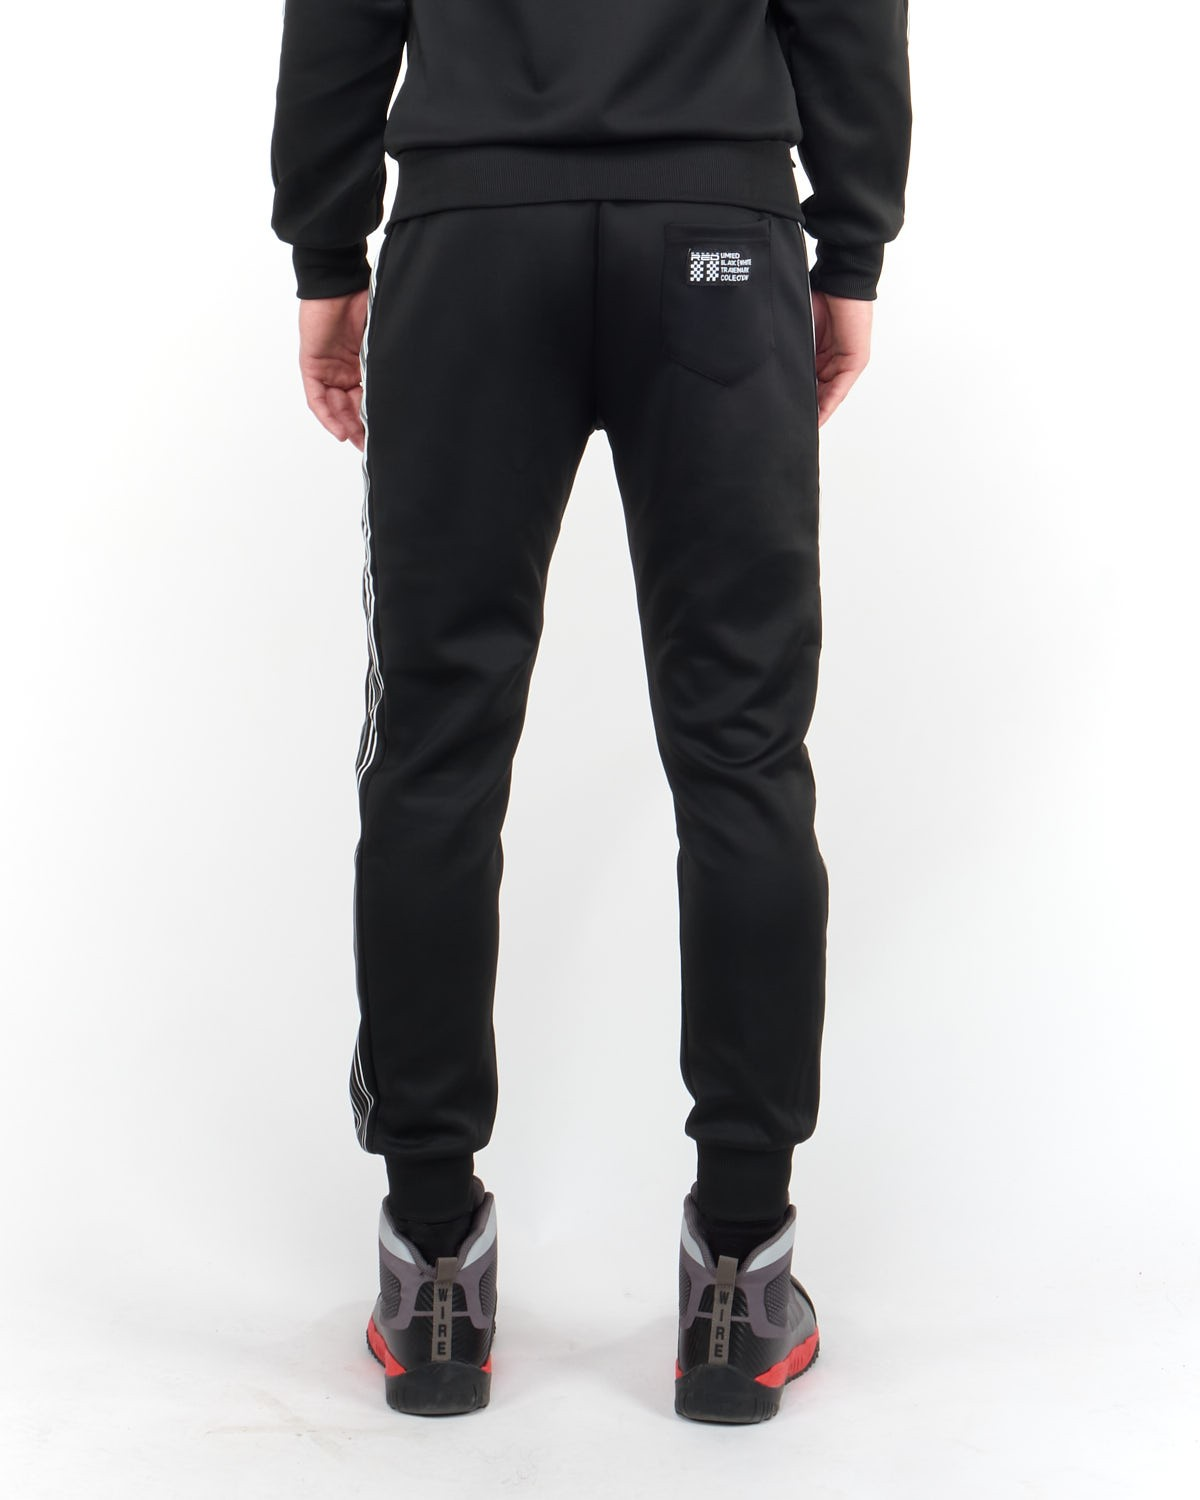 REFLEXERO SPORT IS YOUR GANG Tracksuit BW Edition